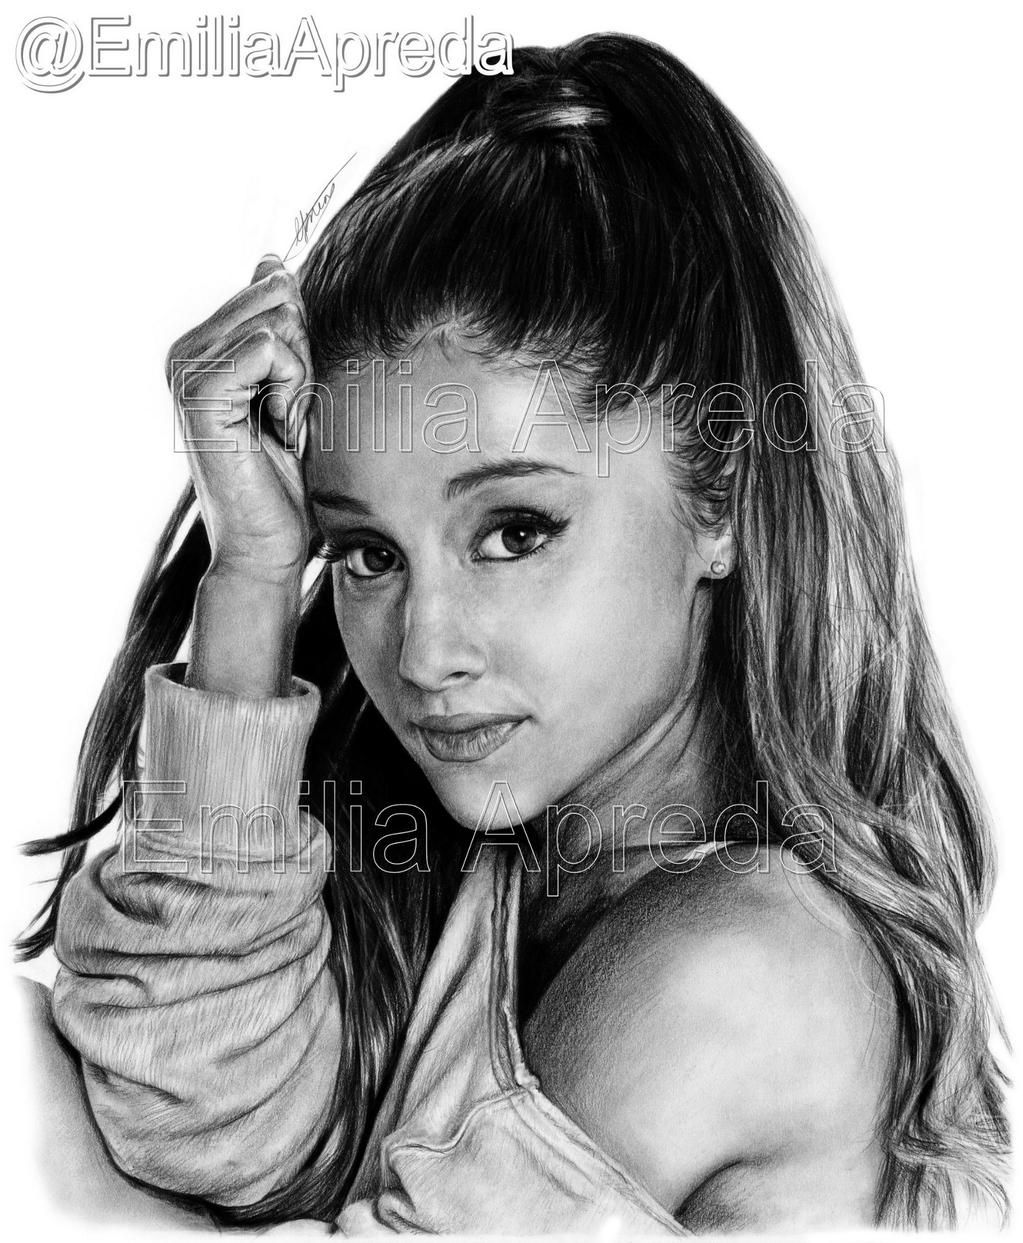 My ariana grande drawing scanned and edited this took me alotttt of hours maybe about 8 9 hrs x arianagrande